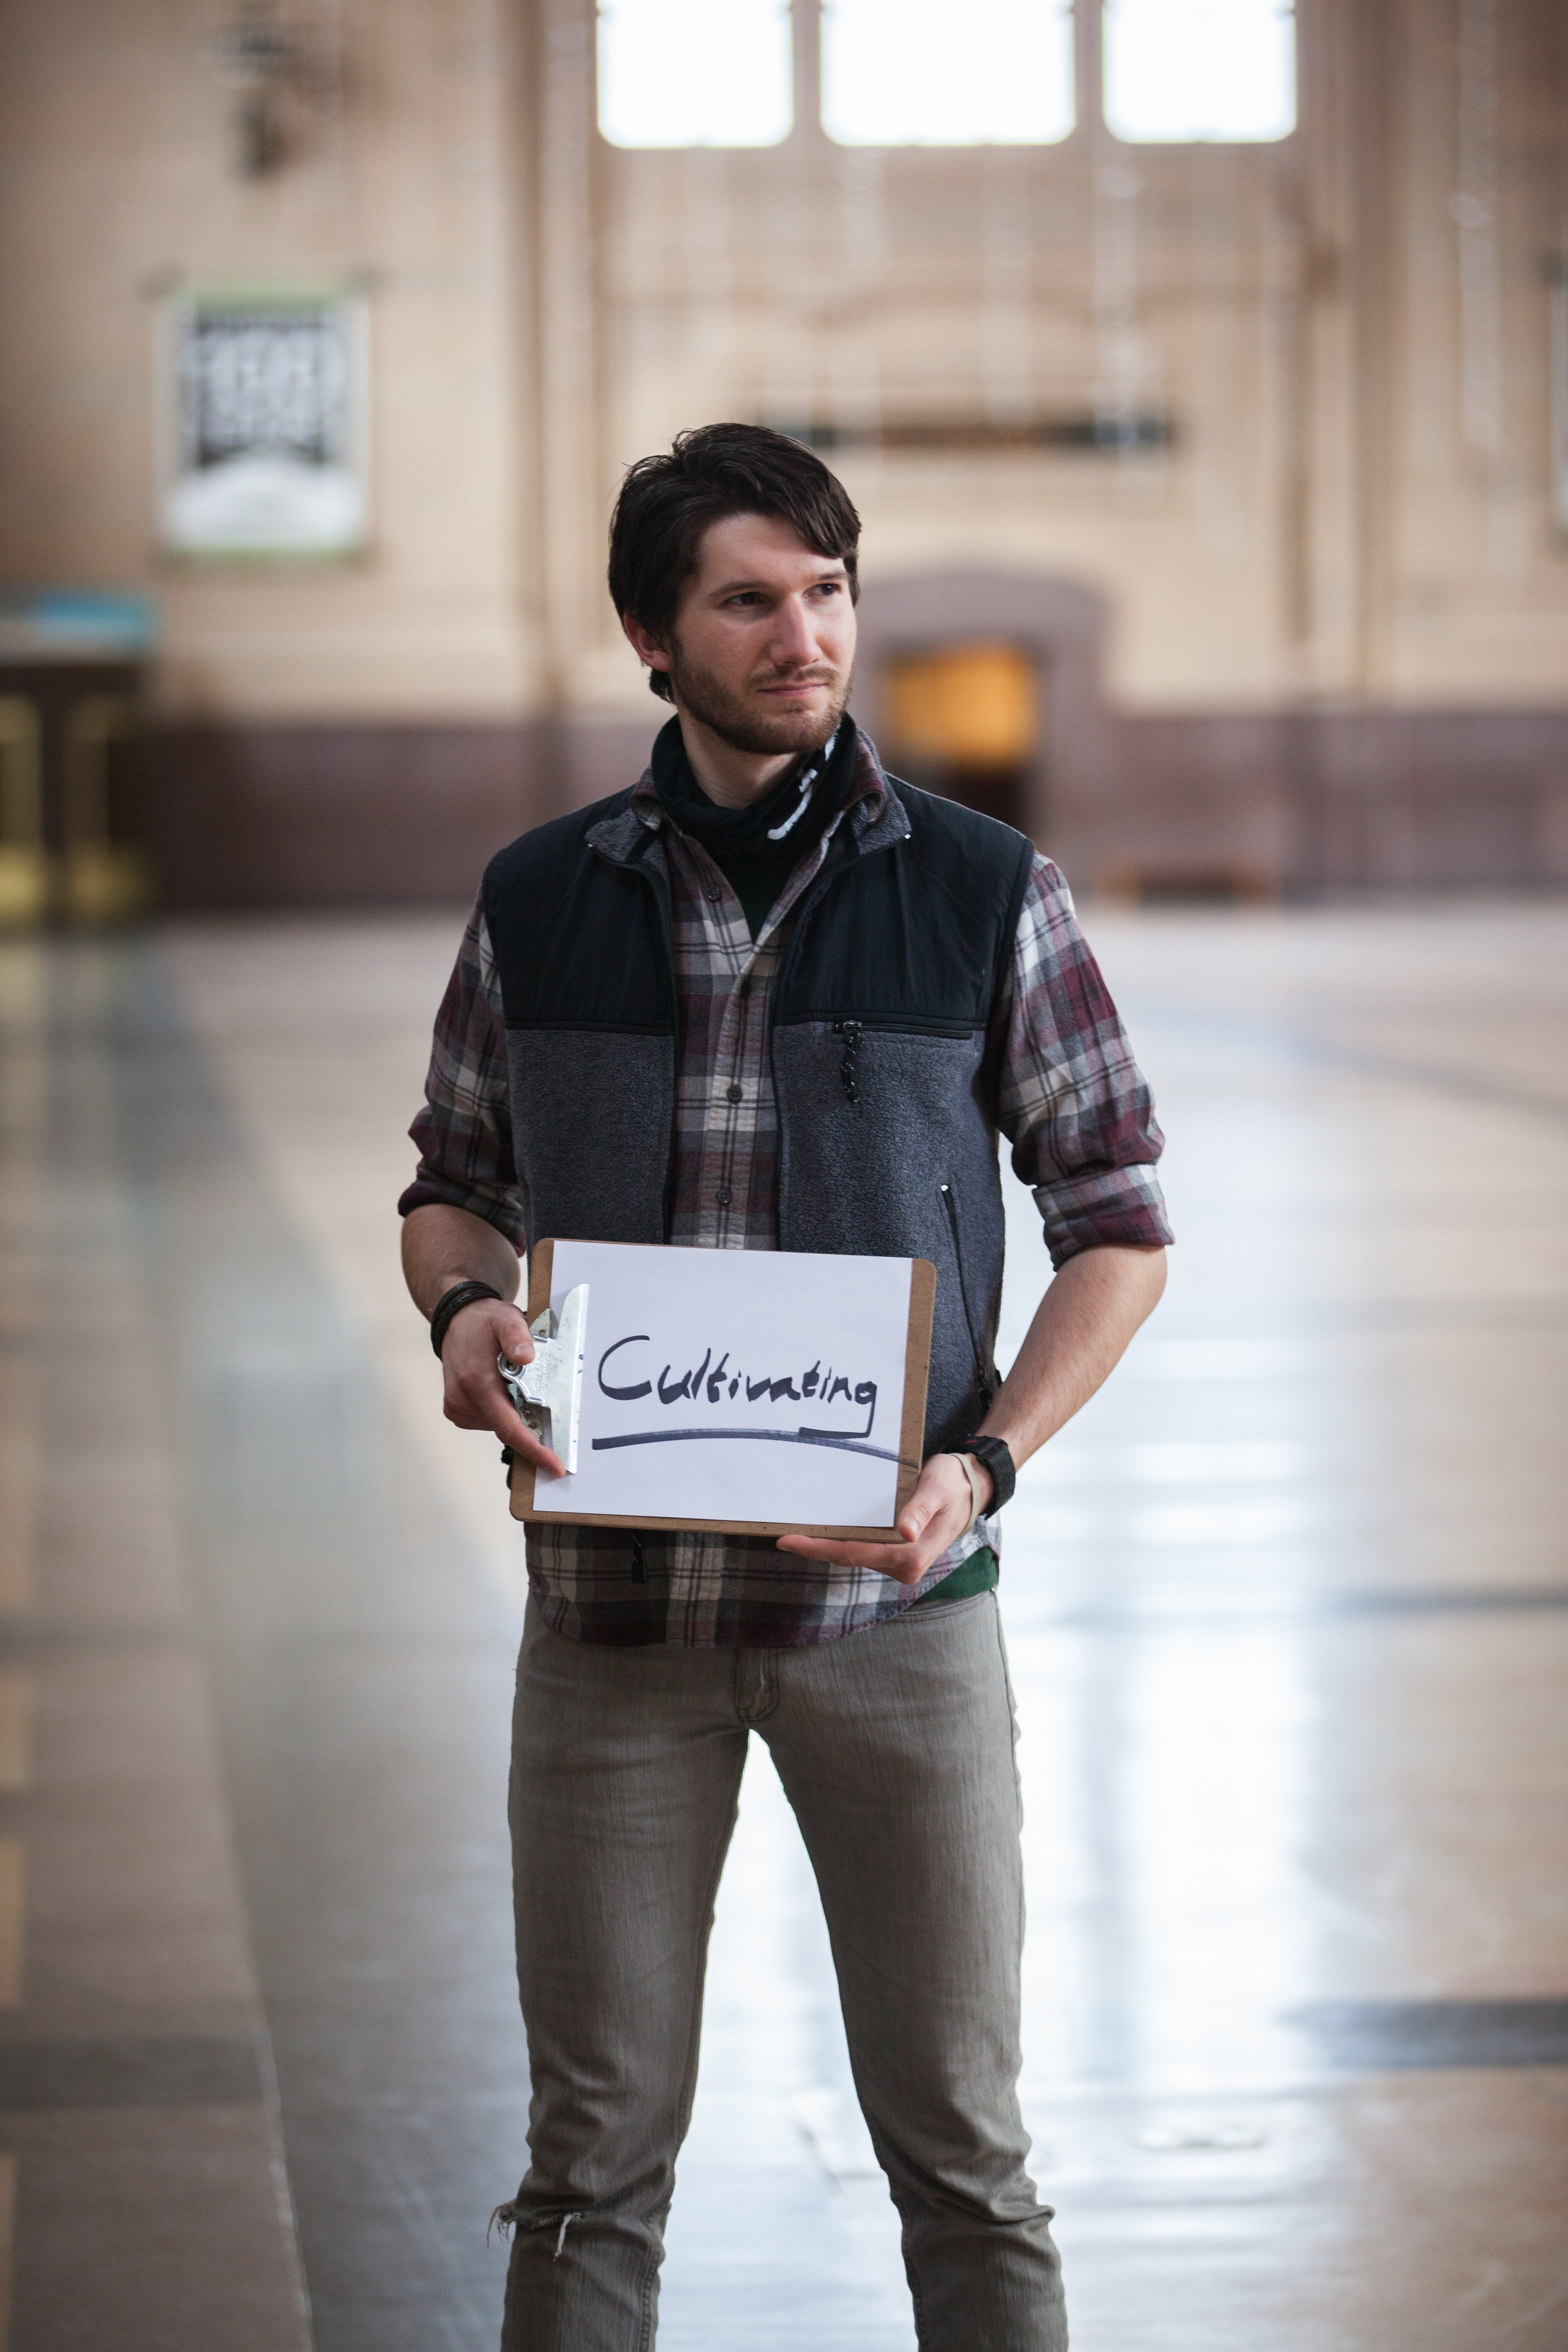 Man standing holding a sign saying of cultivating.